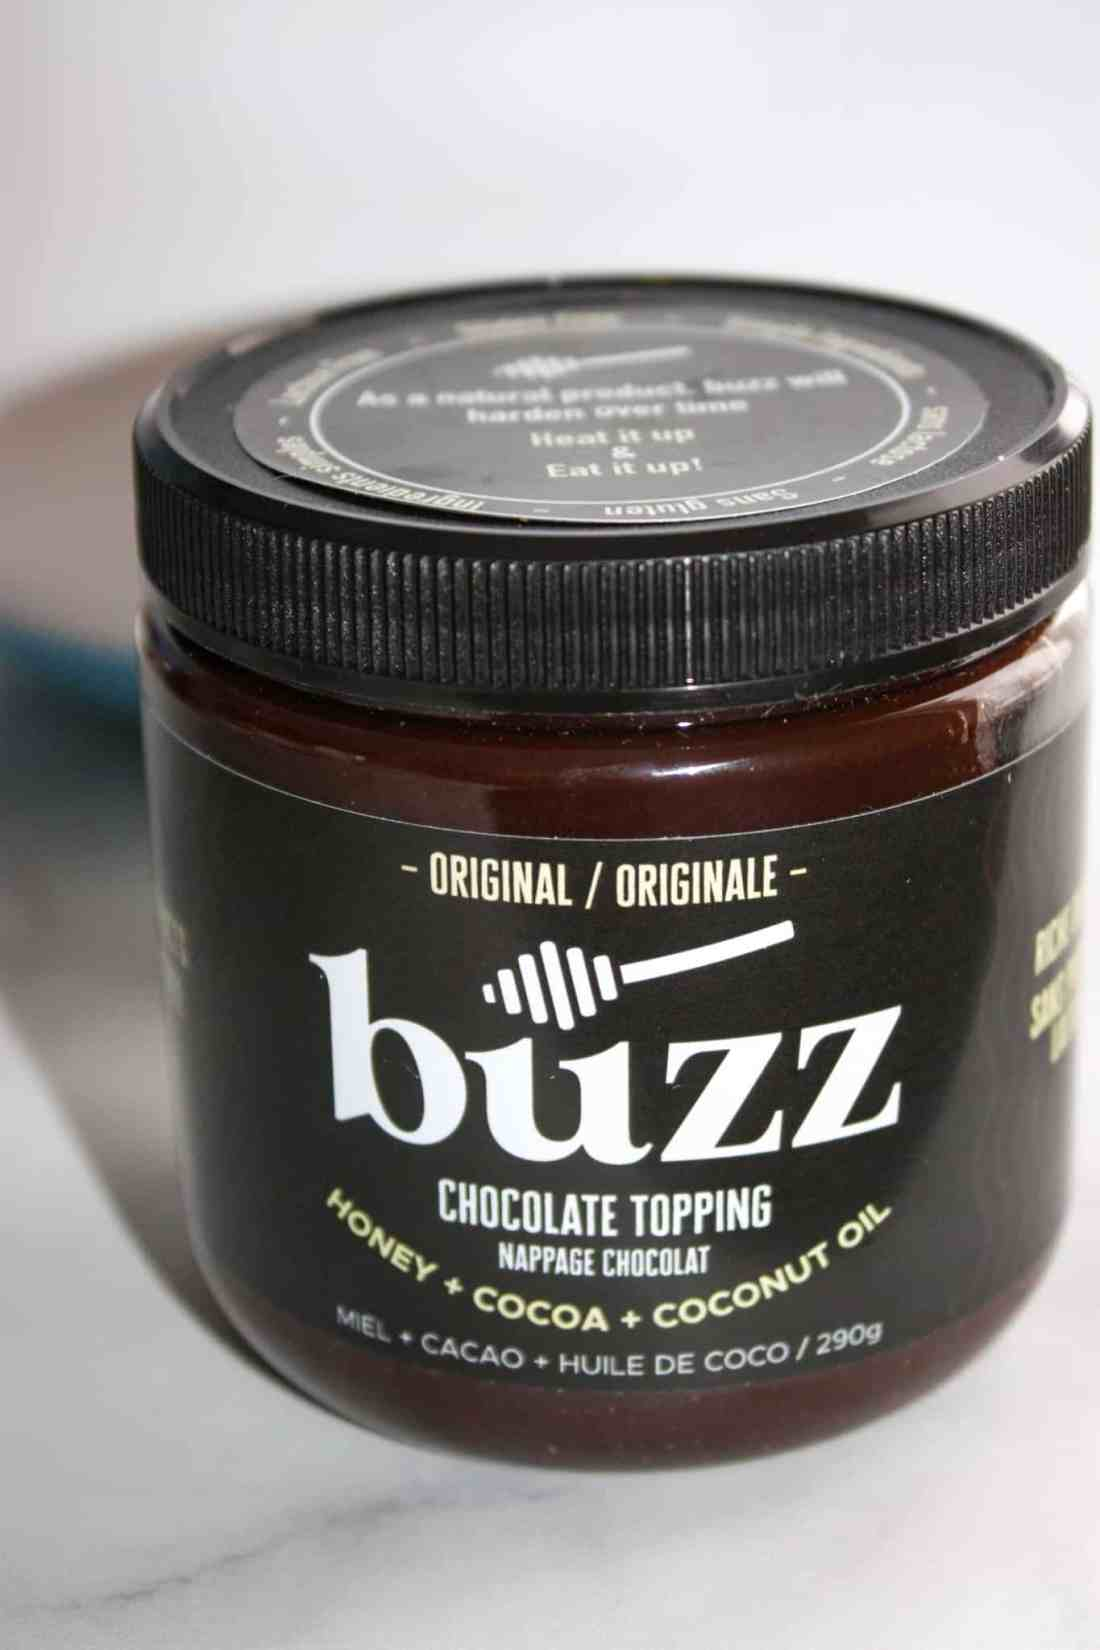 The jar of Buzz.